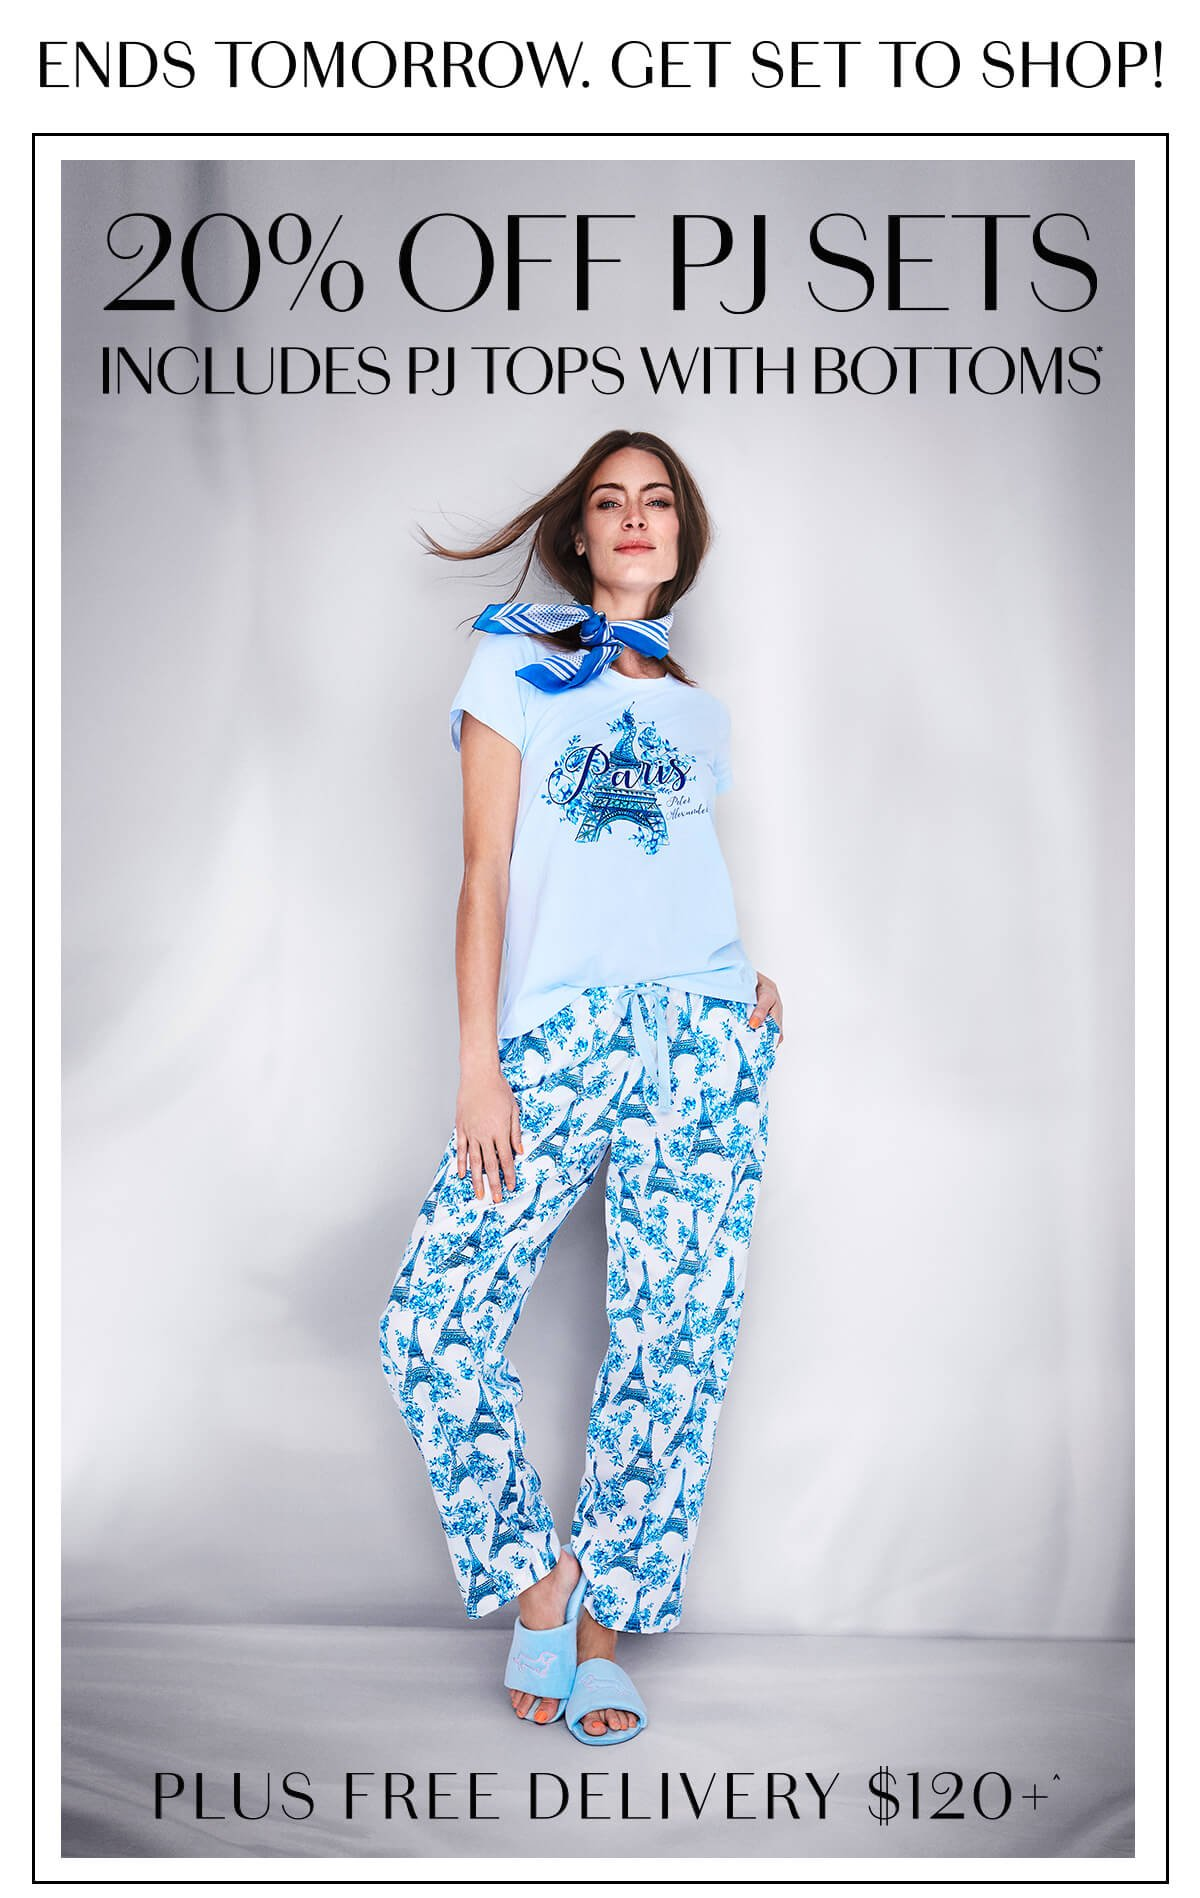 Ends Tomorrow. Get Set To Shop! 20% Off PJ Sets Includes Tops With Bottoms* Plus Free Delivery $120+^